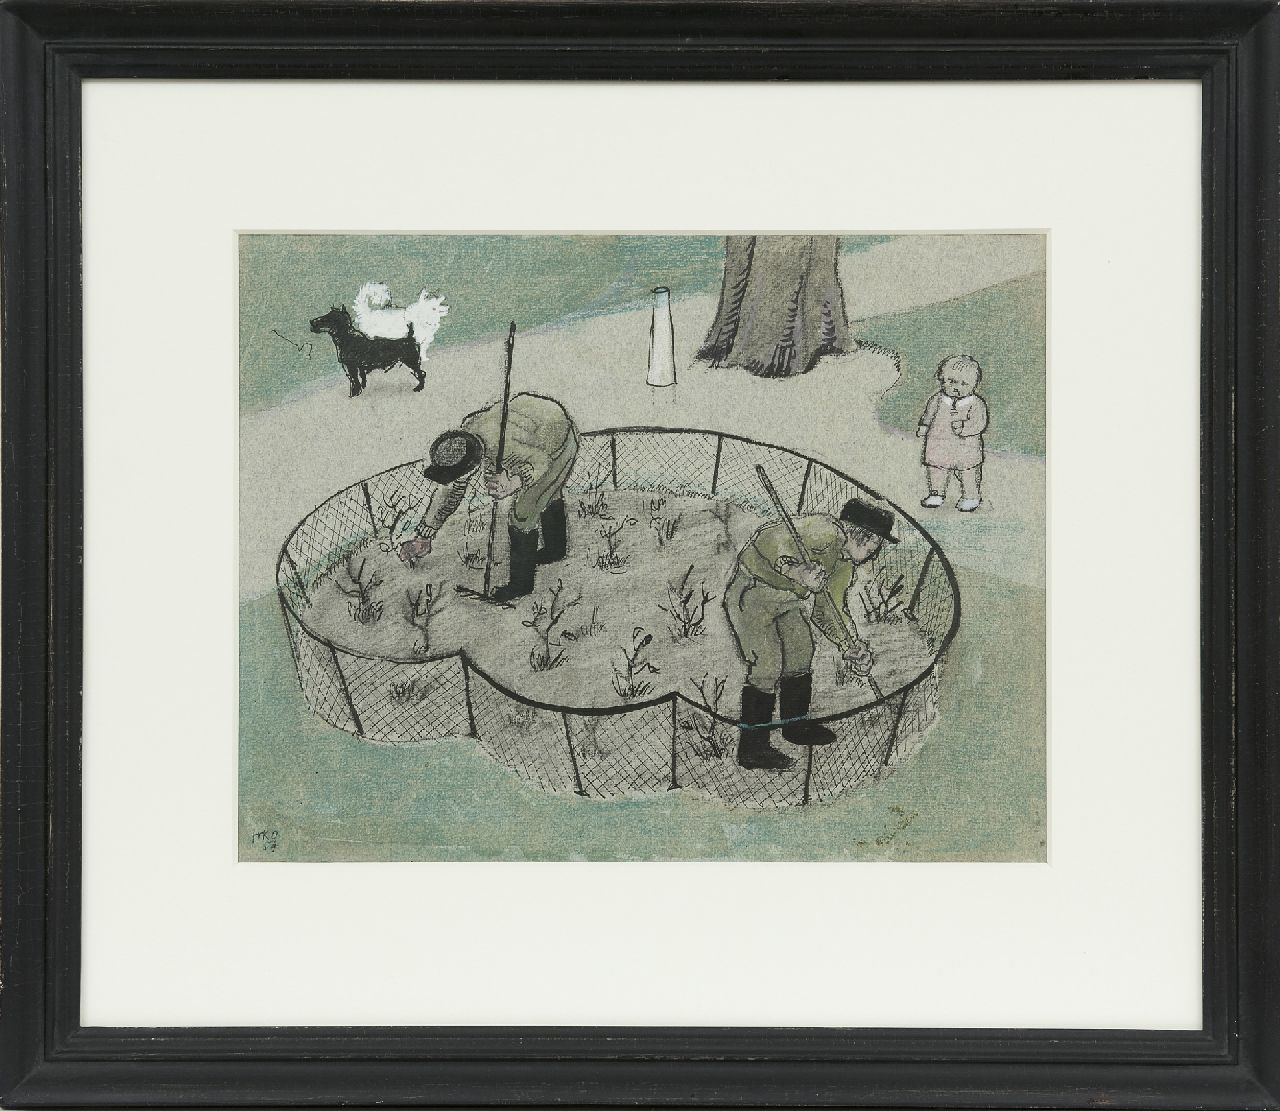 Kamerlingh Onnes H.H.  | 'Harm' Henrick Kamerlingh Onnes | Watercolours and drawings offered for sale | The rose bed (Nieuwe Plantage, Delft), Indian ink and chalk on paper 25.5 x 32.8 cm, signed l.l. with monogram and dated '54